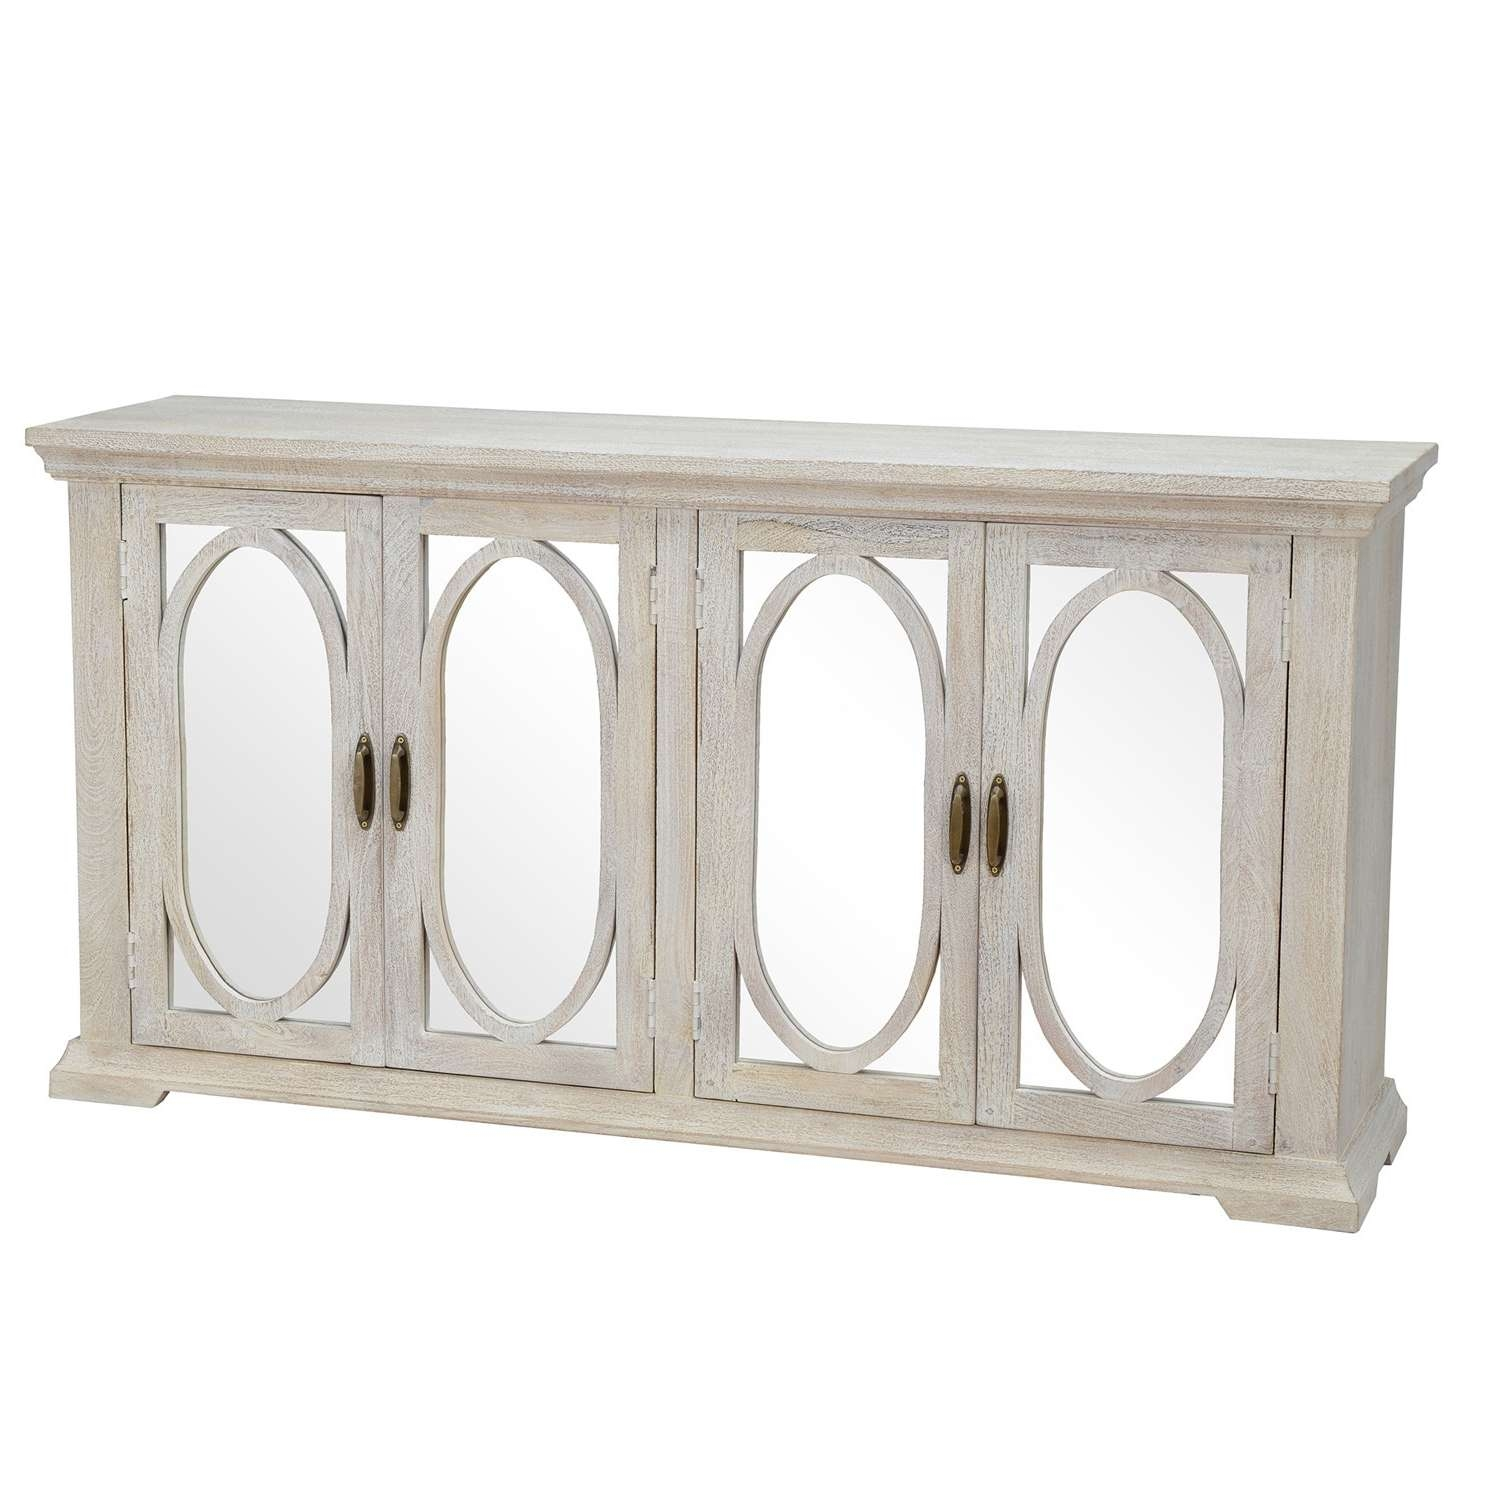 Manchester Wood Mirrored 70 Inch Sideboardkosas Home – Free Within 70 Inch Sideboards (View 12 of 20)